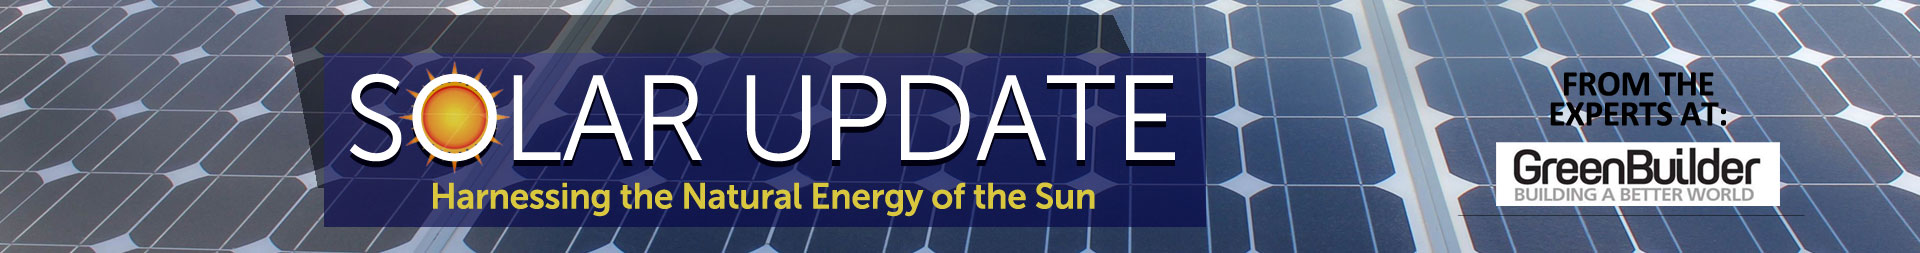 Green Builder Solar Update Banner